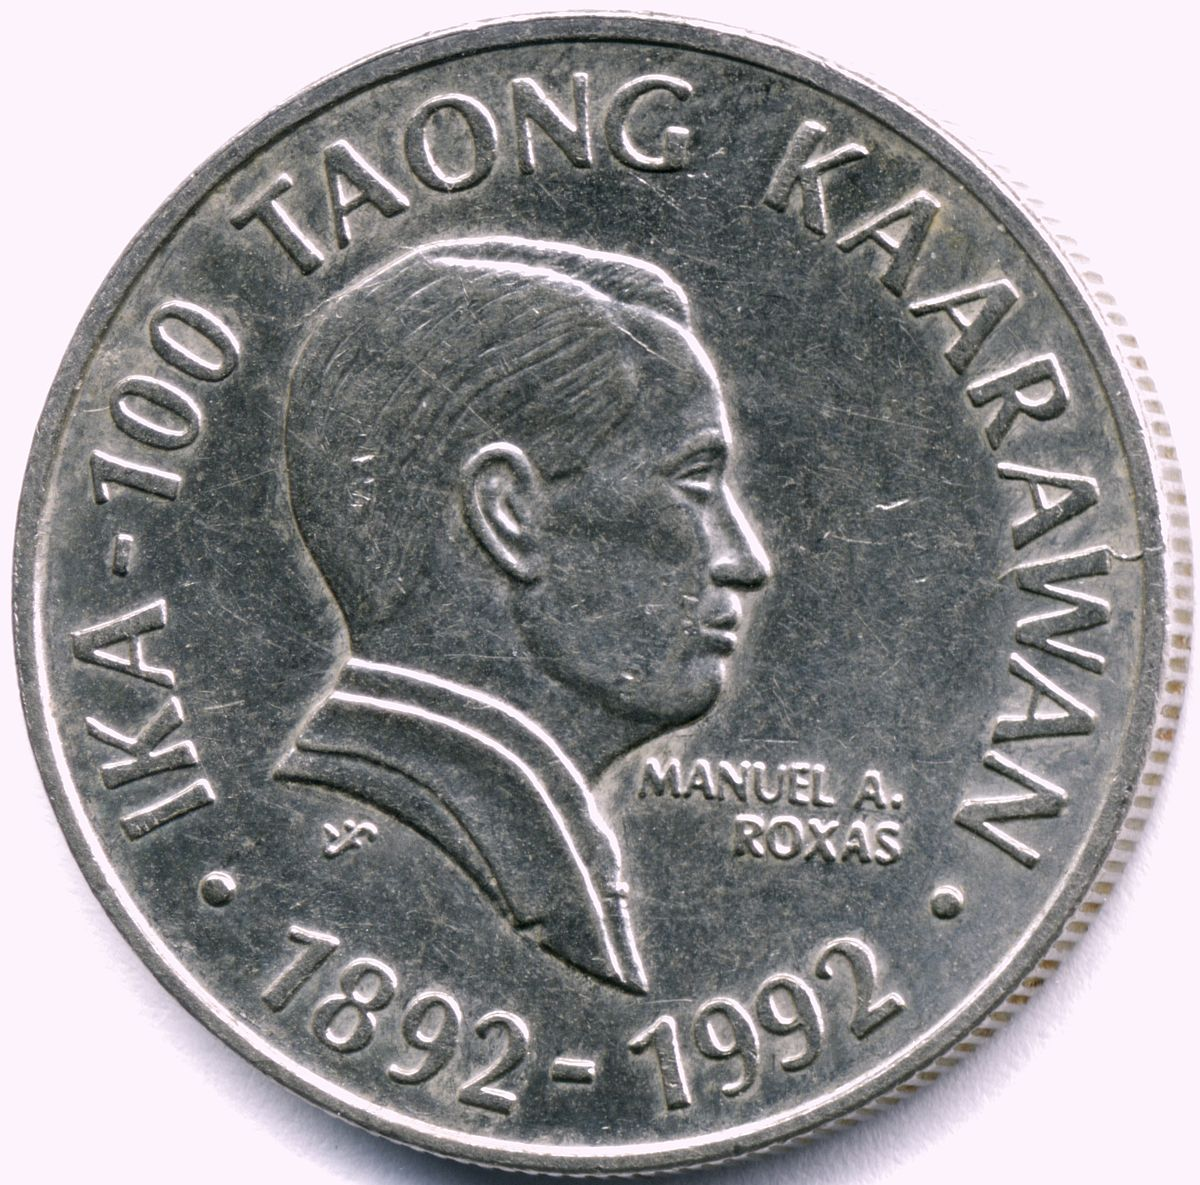 Coin Ph: Coins Of The Philippine Peso